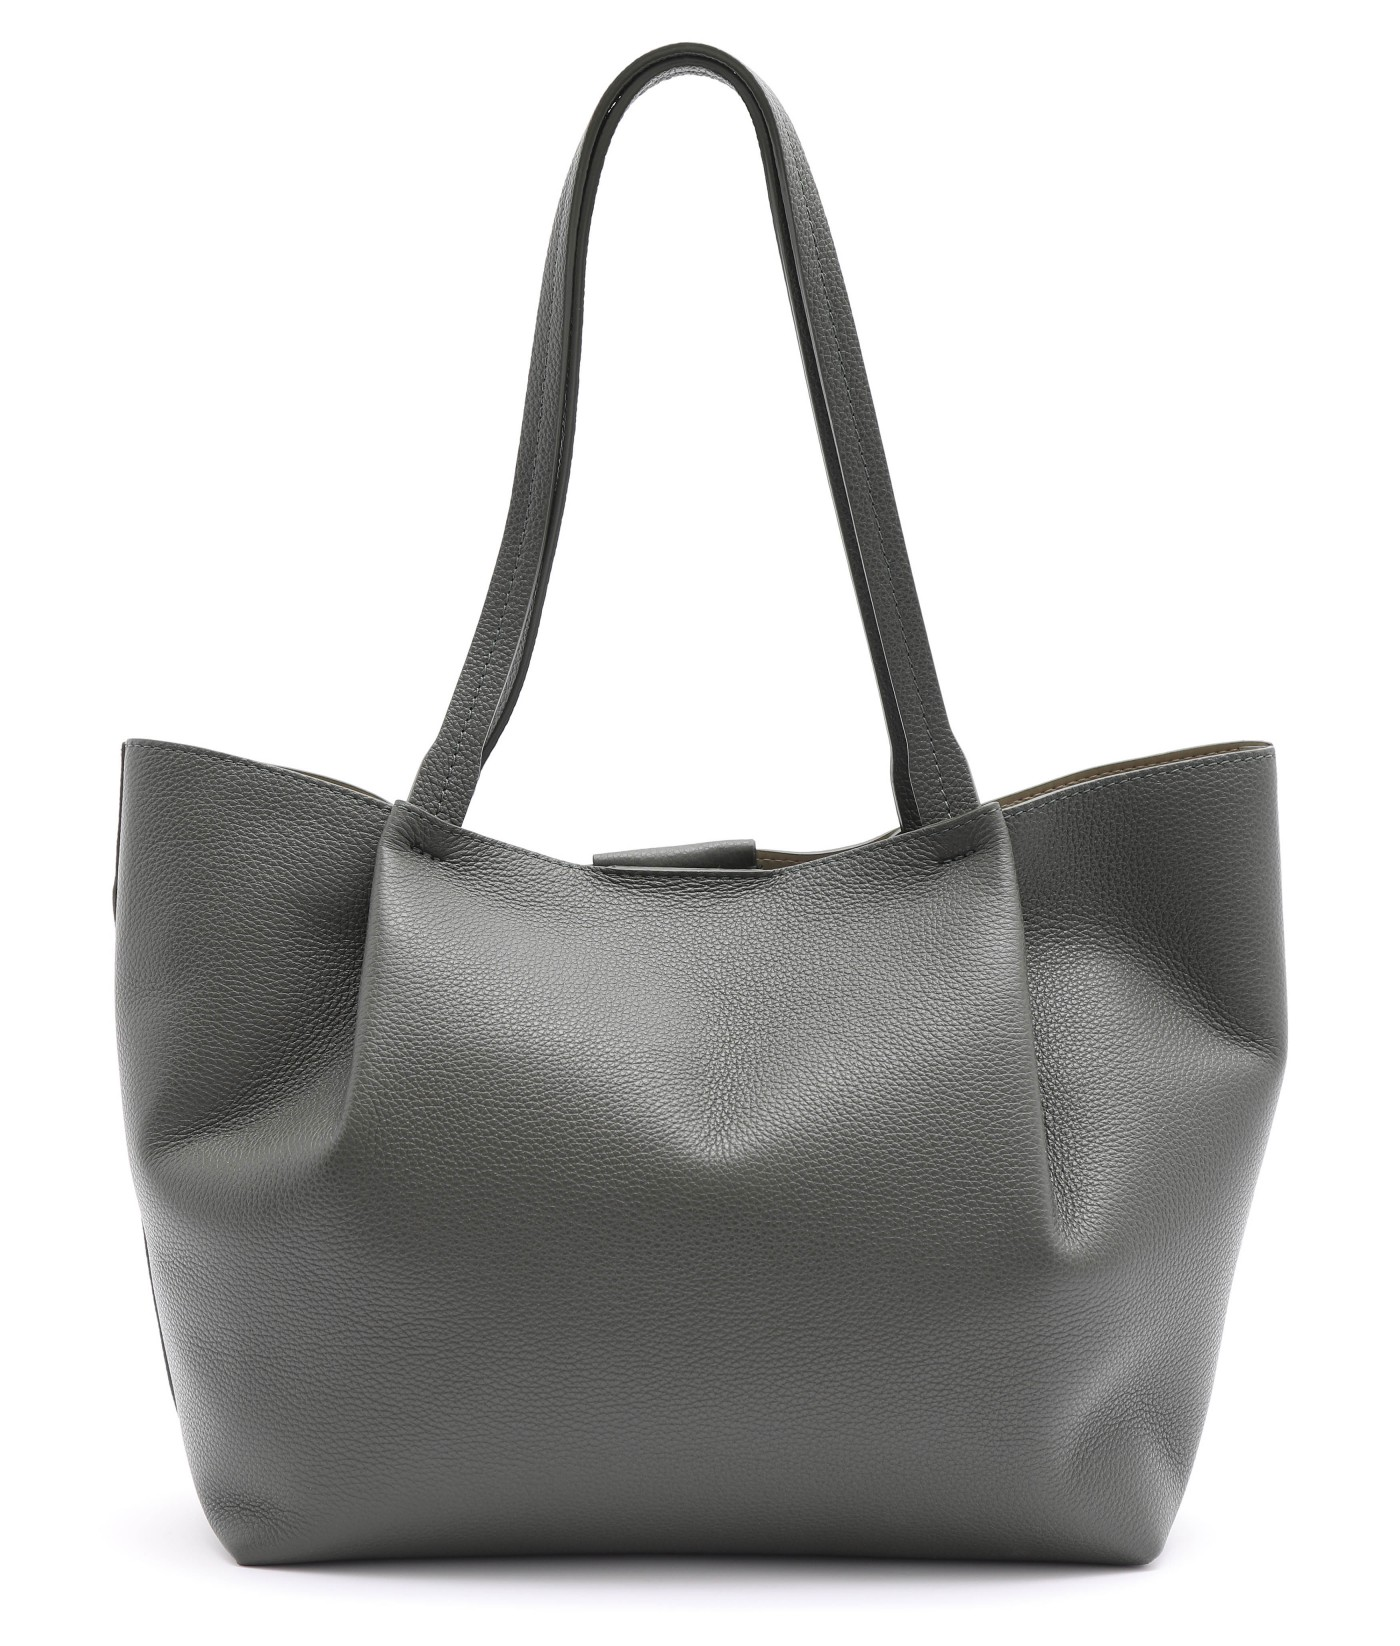 GOIAS SIGNATURE LARGE TOTE (FOREST GREEN)